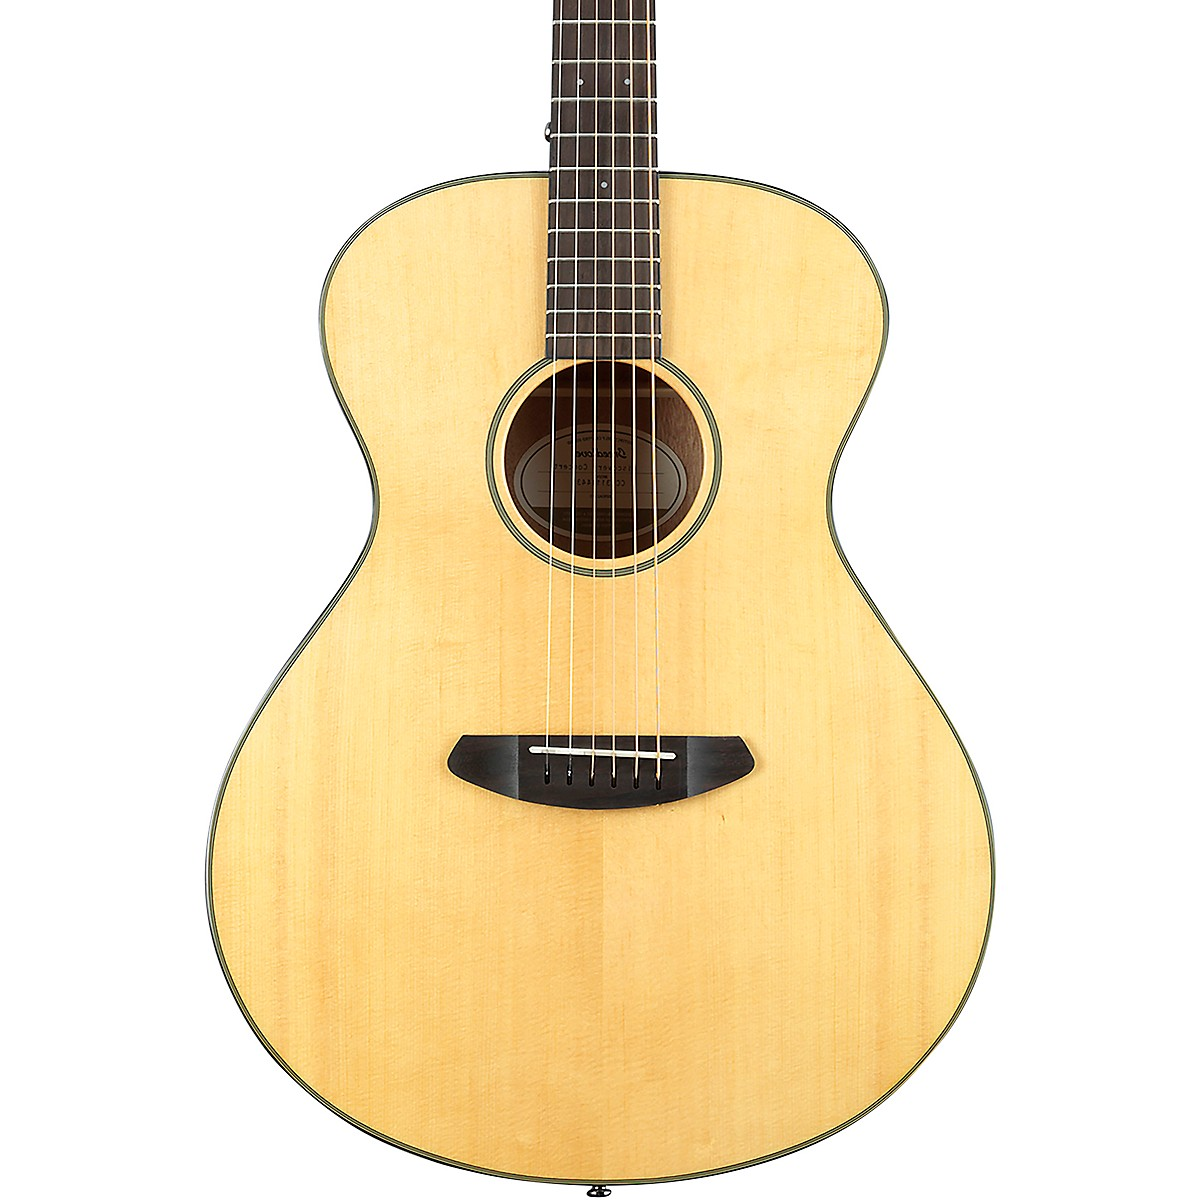 Breedlove Discovery Concert Left-Handed Acoustic Guitar